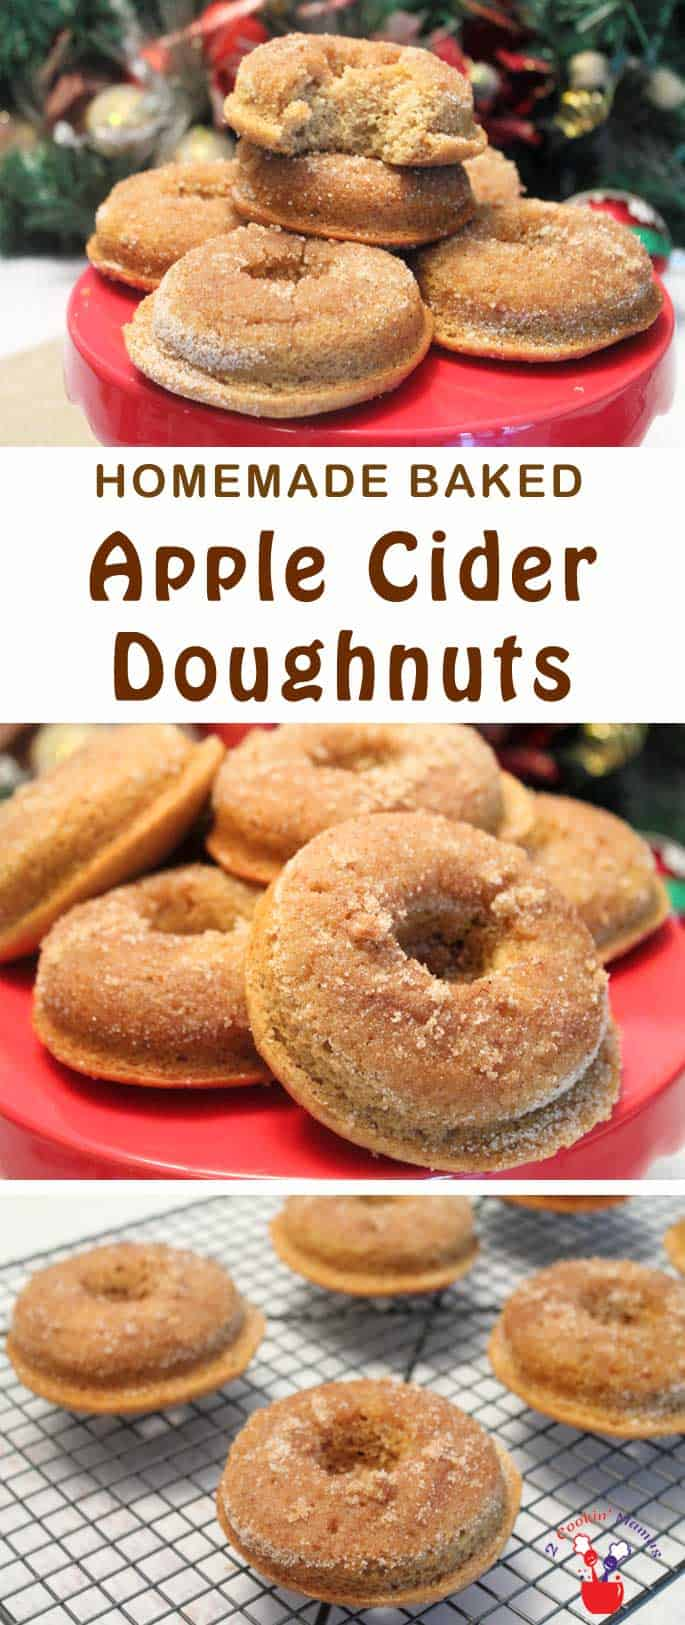 Fresh baked, fluffy apple cider doughnuts, topped with cinnamon sugar, bring the taste of apples and spice to your breakfast table. #recipe #doughnuts #breakfast #applecider